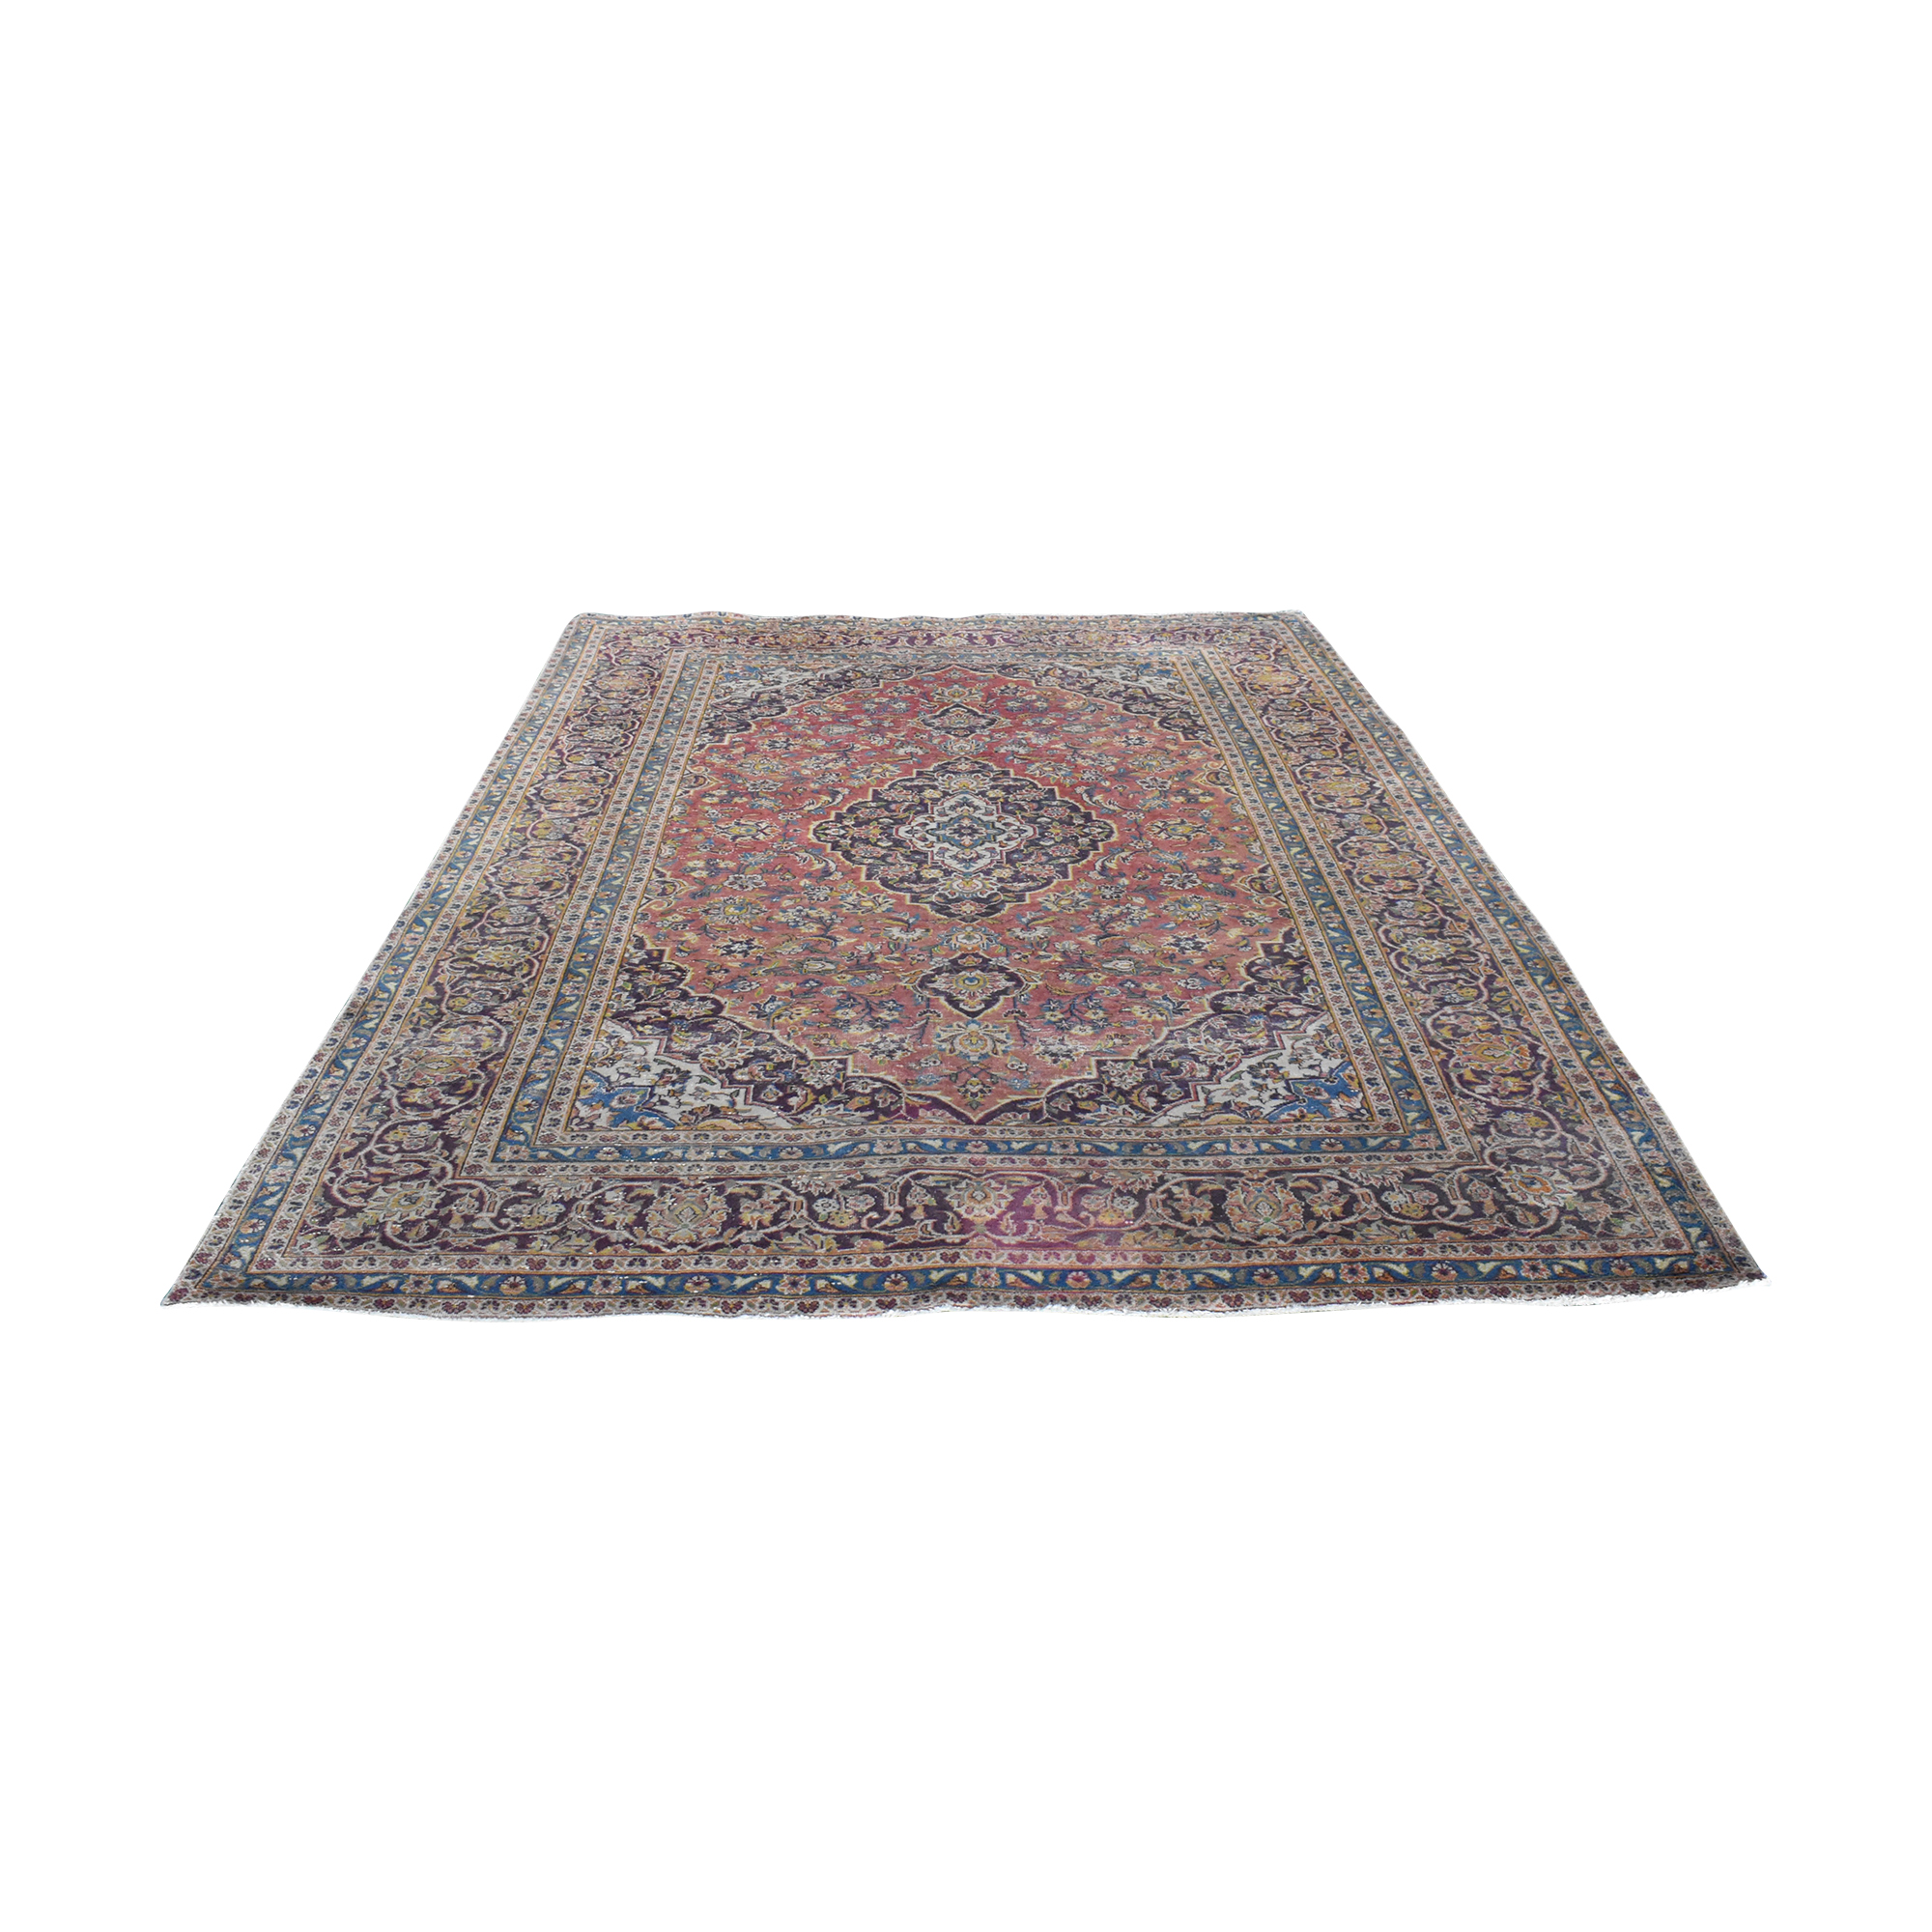 buy  Persian-Style Area Rug online